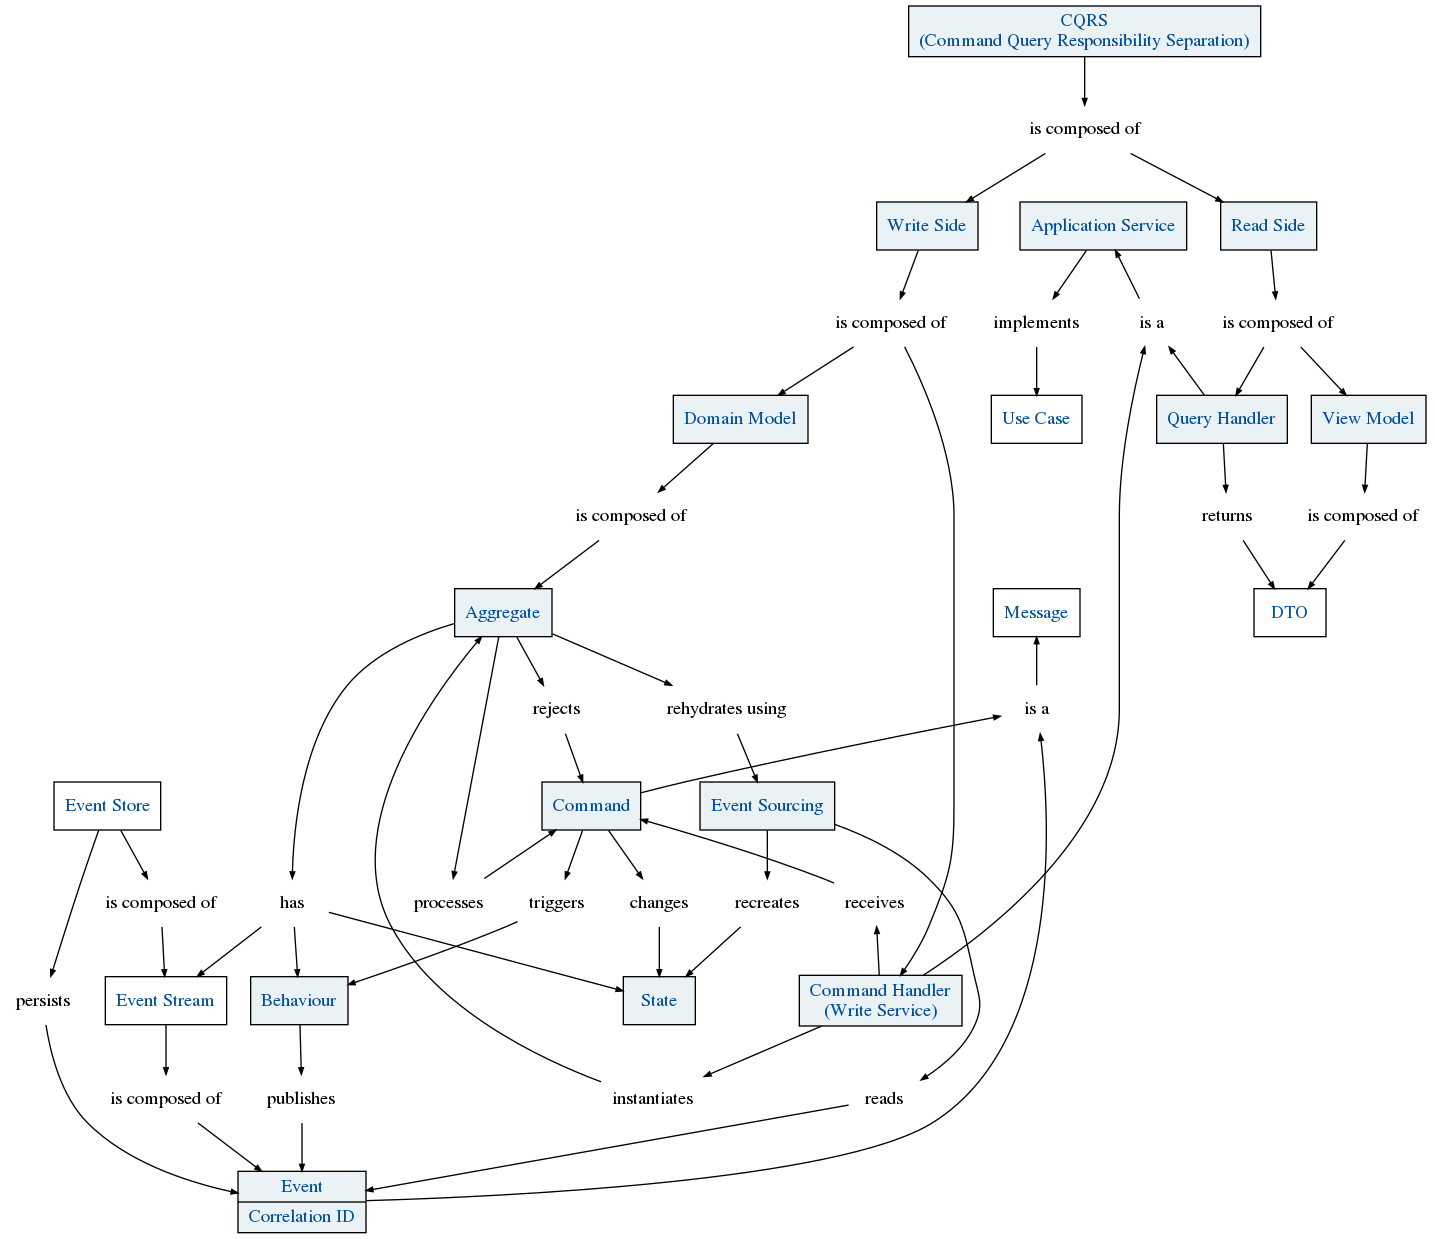 Concept  CQRS And Event Sourcing  Key Concept  conceptmapsio